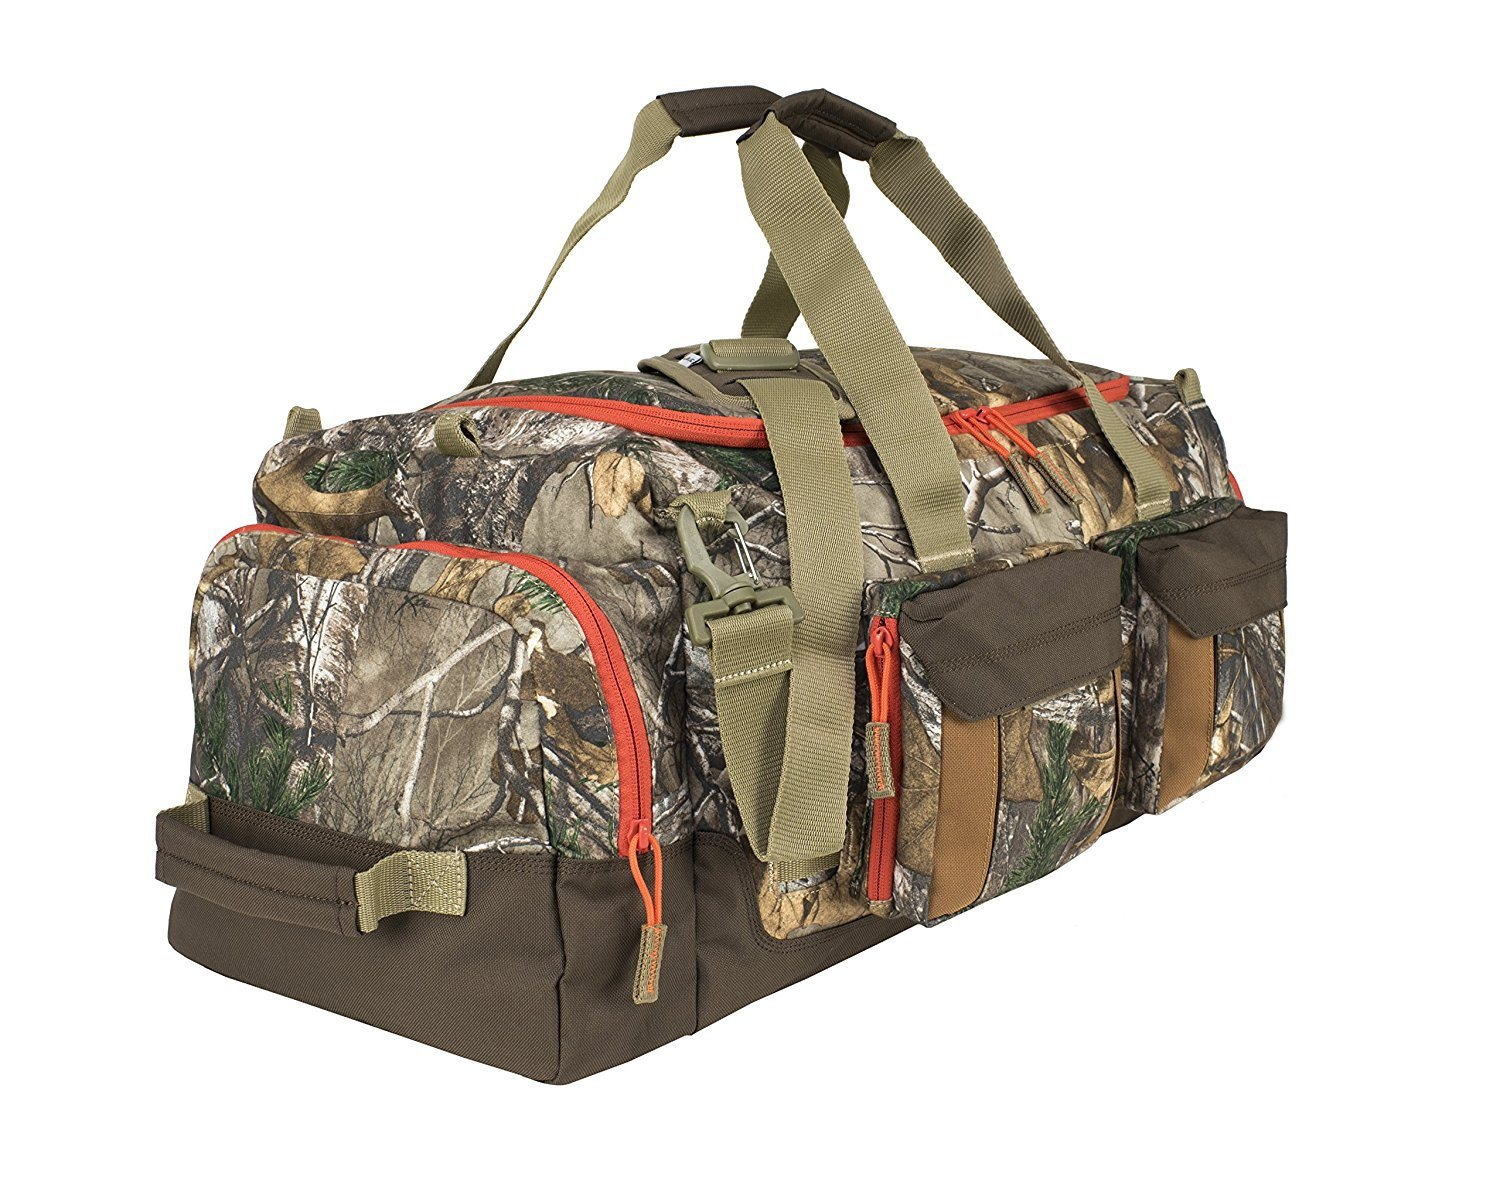 Hunt Realtree Camo Travel Duffel Gear Bag